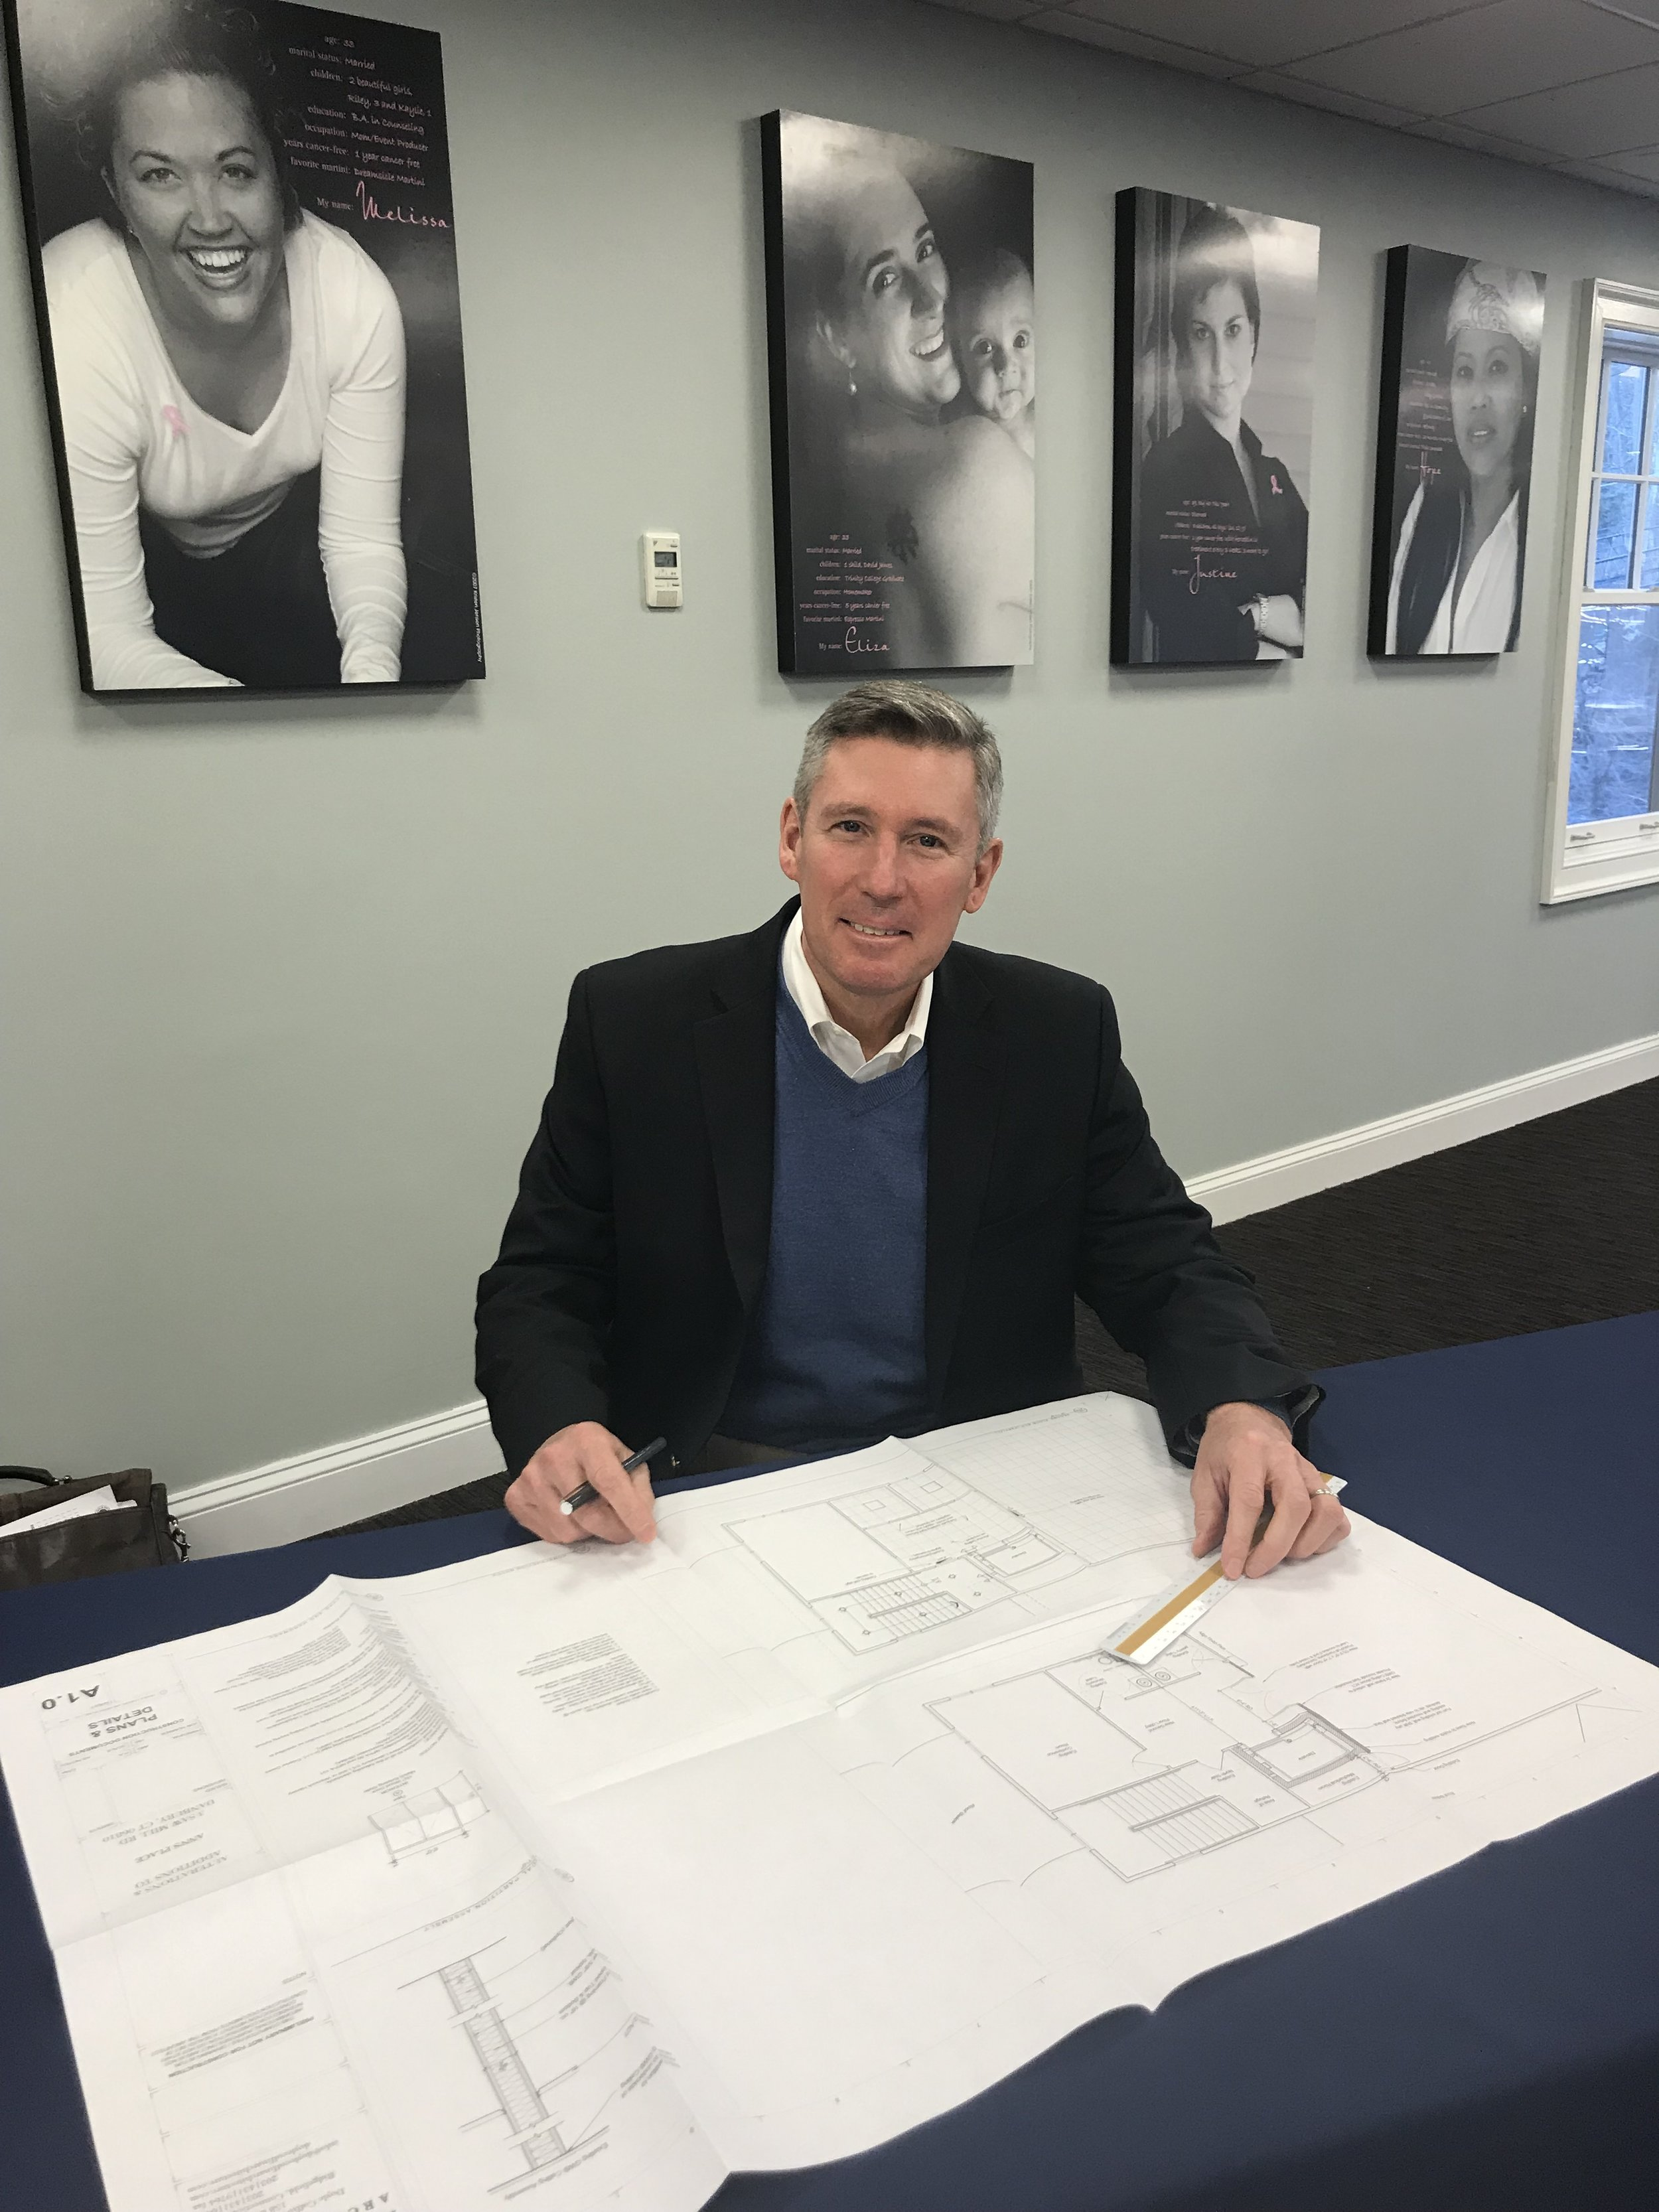 Doyle Coffin Architecture created the original plans for Ann's Place and John Doyle came back to help with the conference room upgrade.